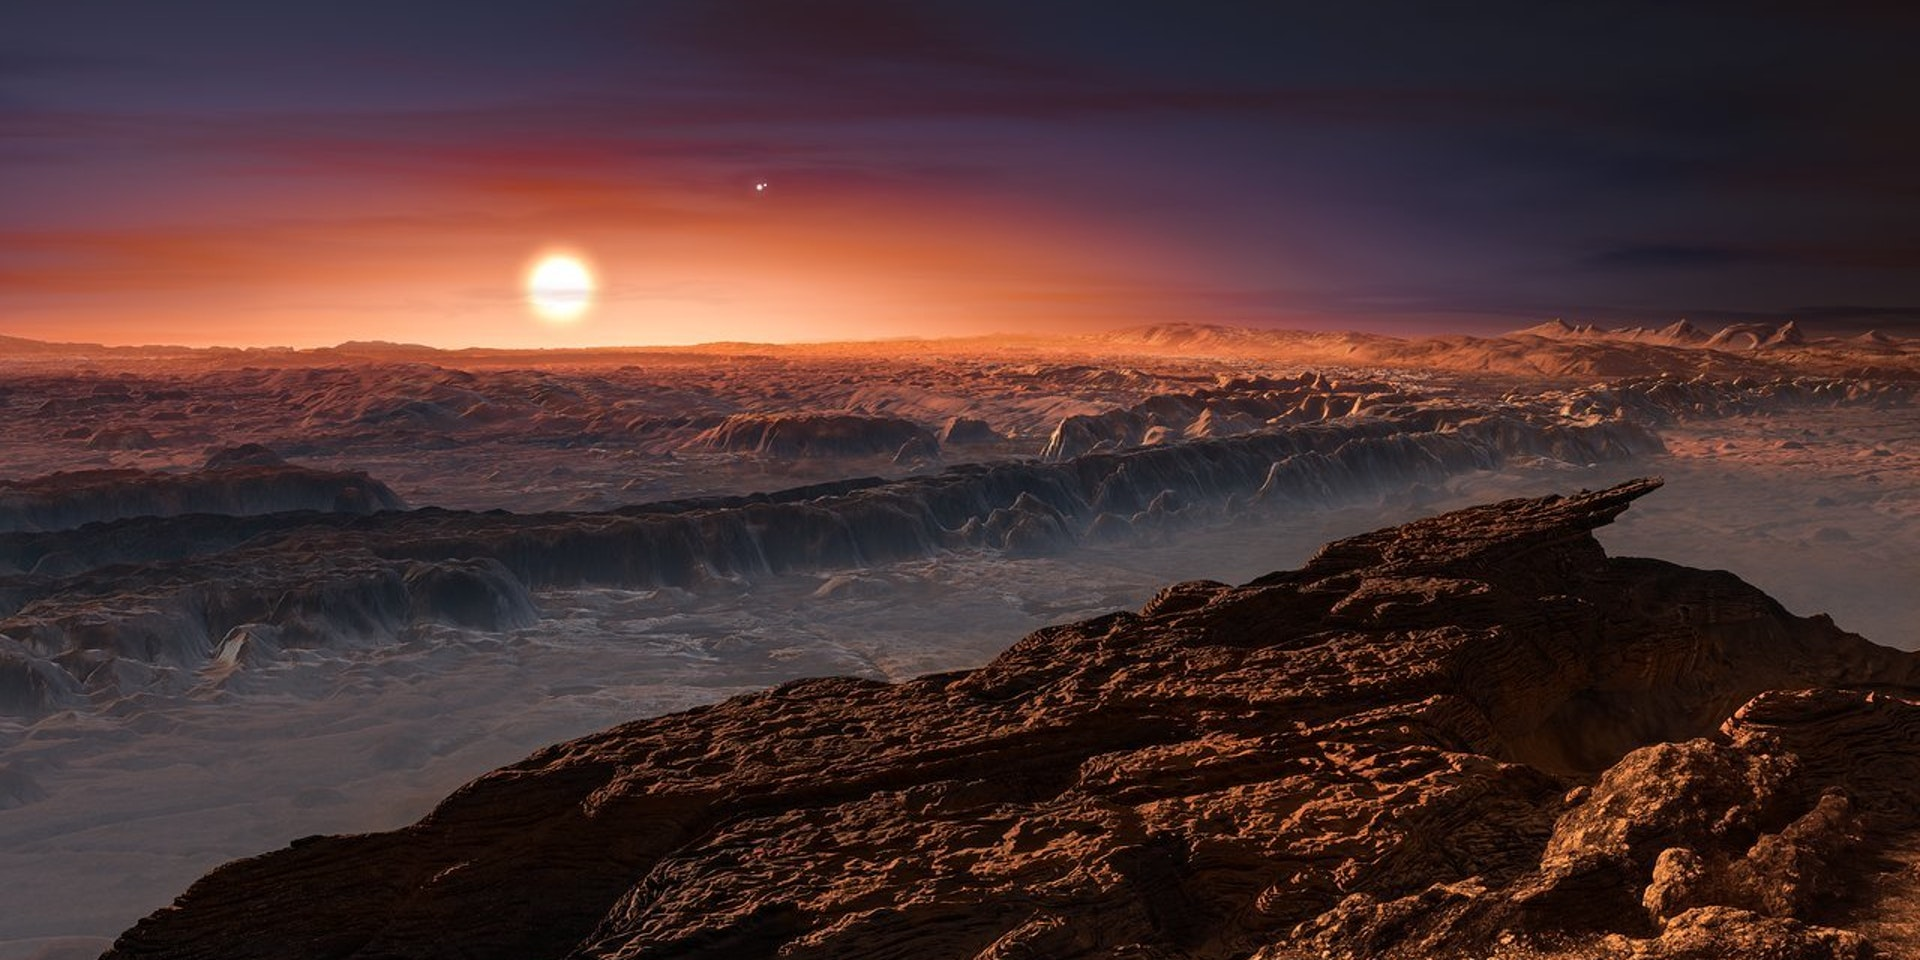 Artist's impression shows a view of the surface of the planet Proxima b orbiting the red dwarf star Proxima Centauri, the closest star to the Solar System.